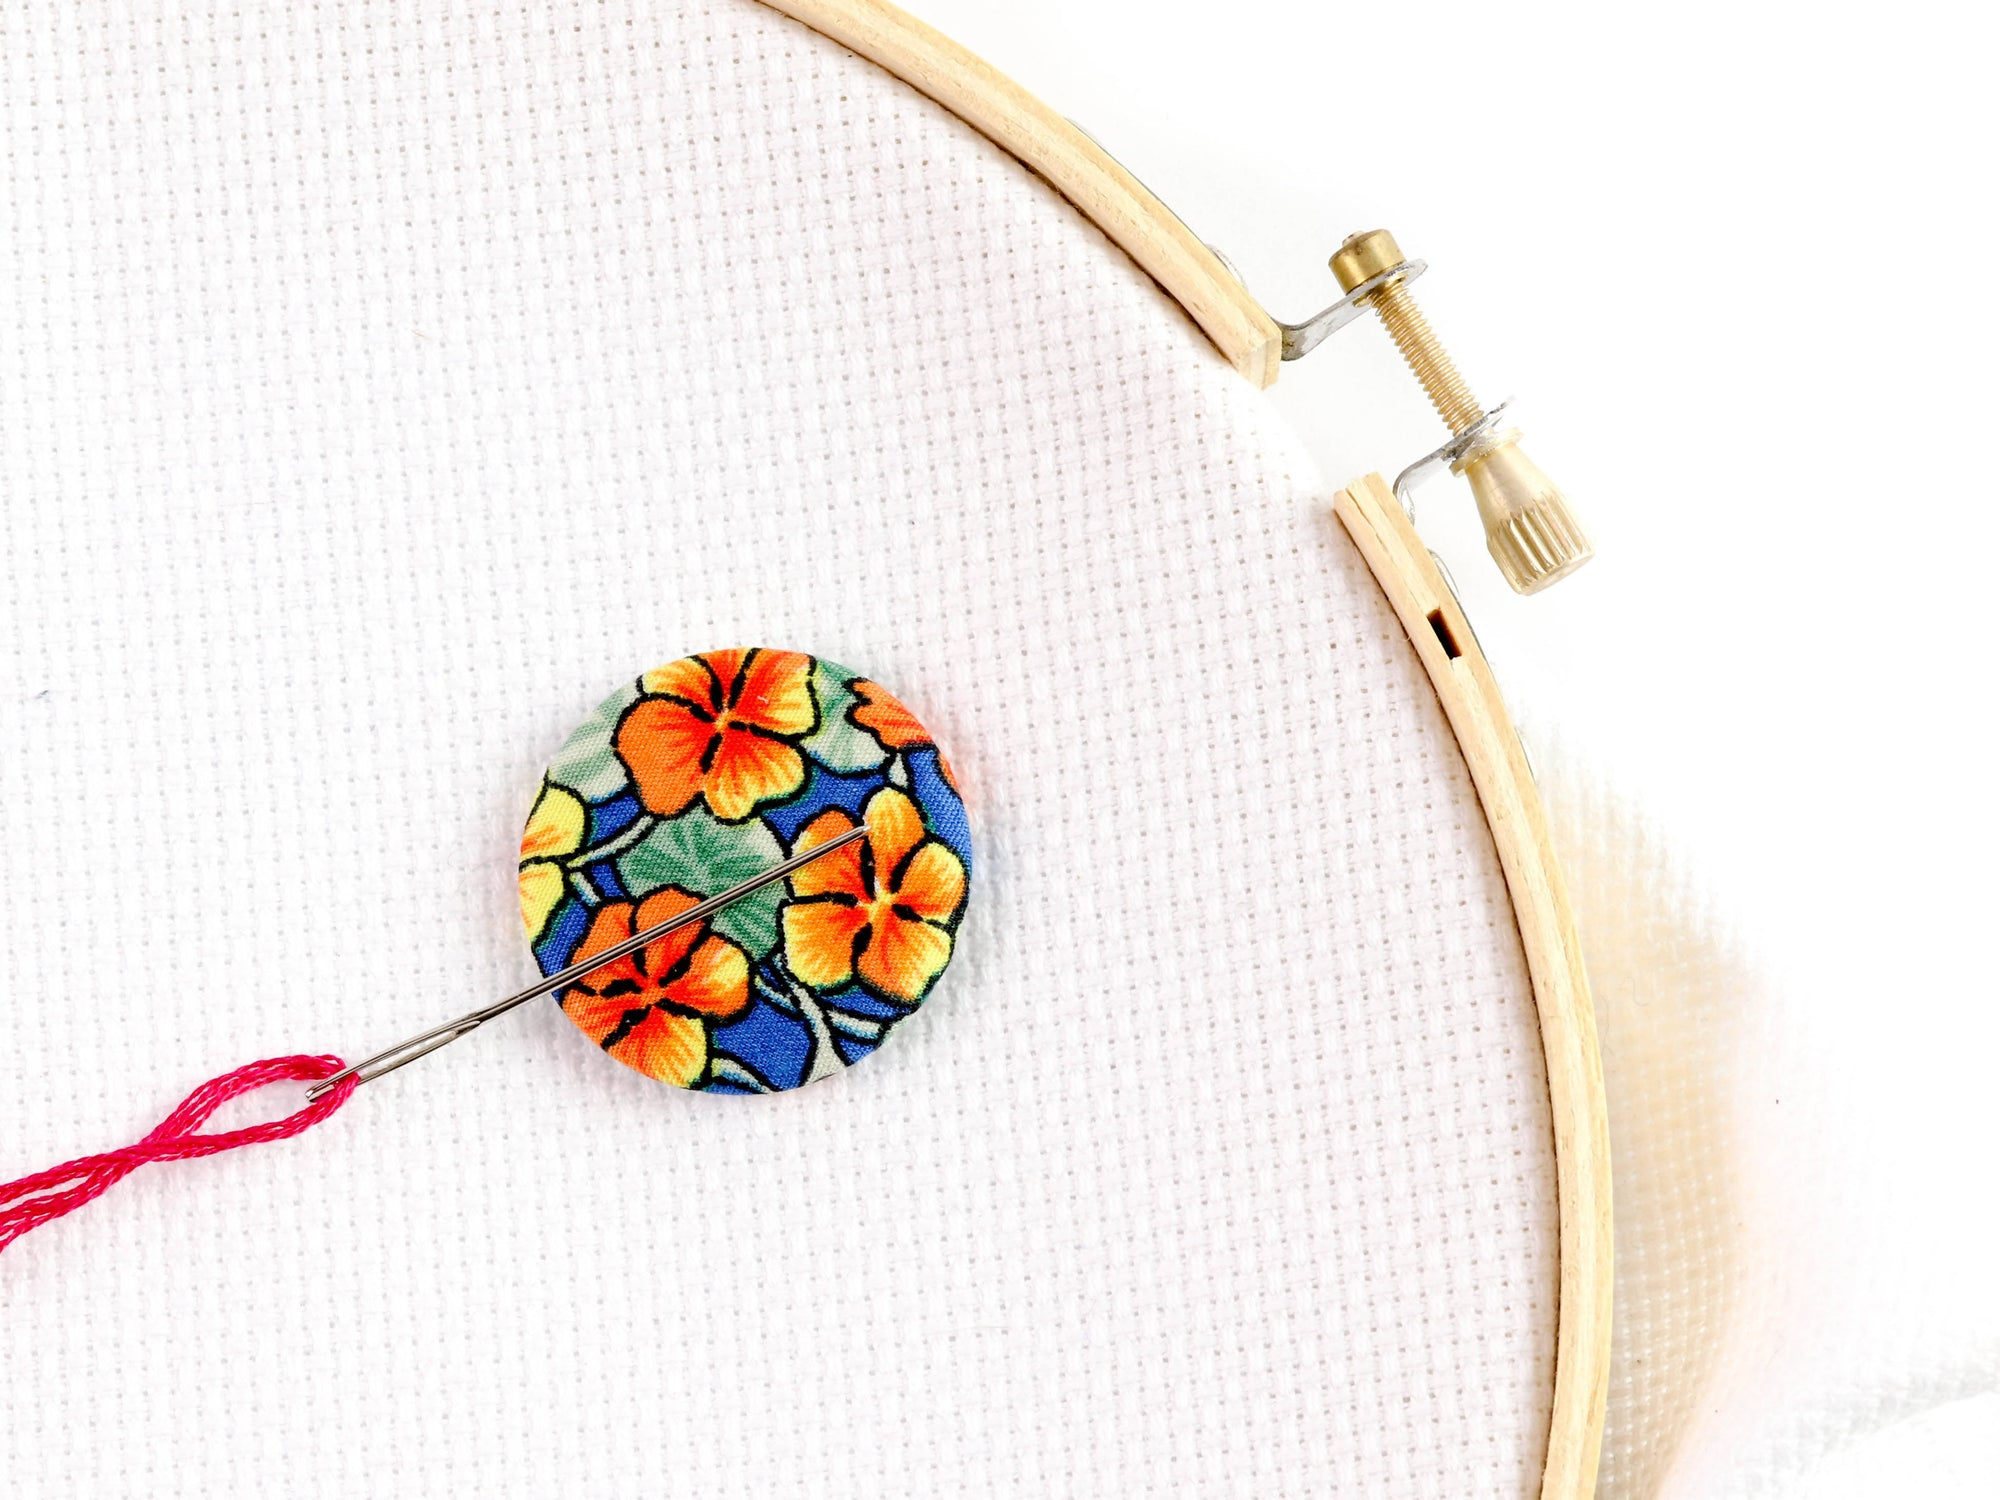 Needle minder: Tropical Hibiscus Design - Fabric Needlekeepers with Strong Ceramic Magnets for Embroidery, Cross Stitch, Crafting